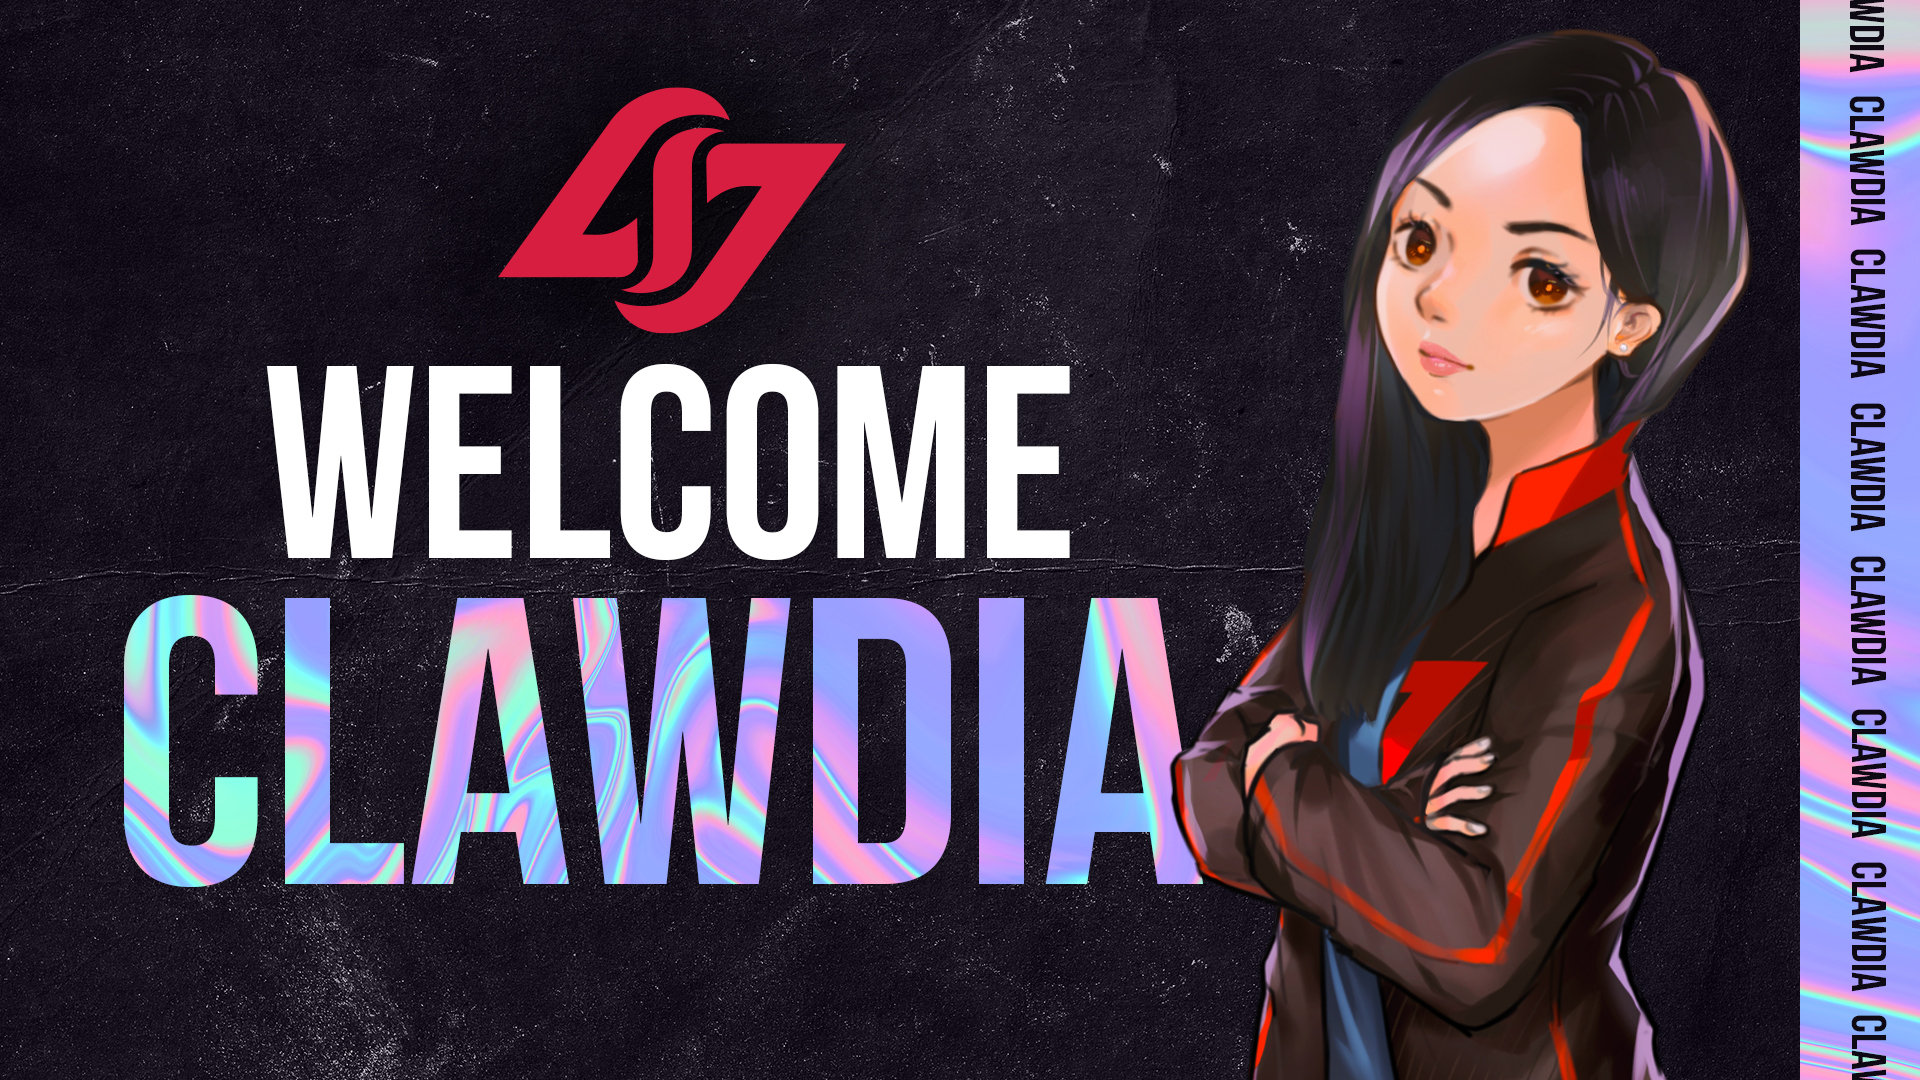 CLG Red signs clawdia to VALORANT roster